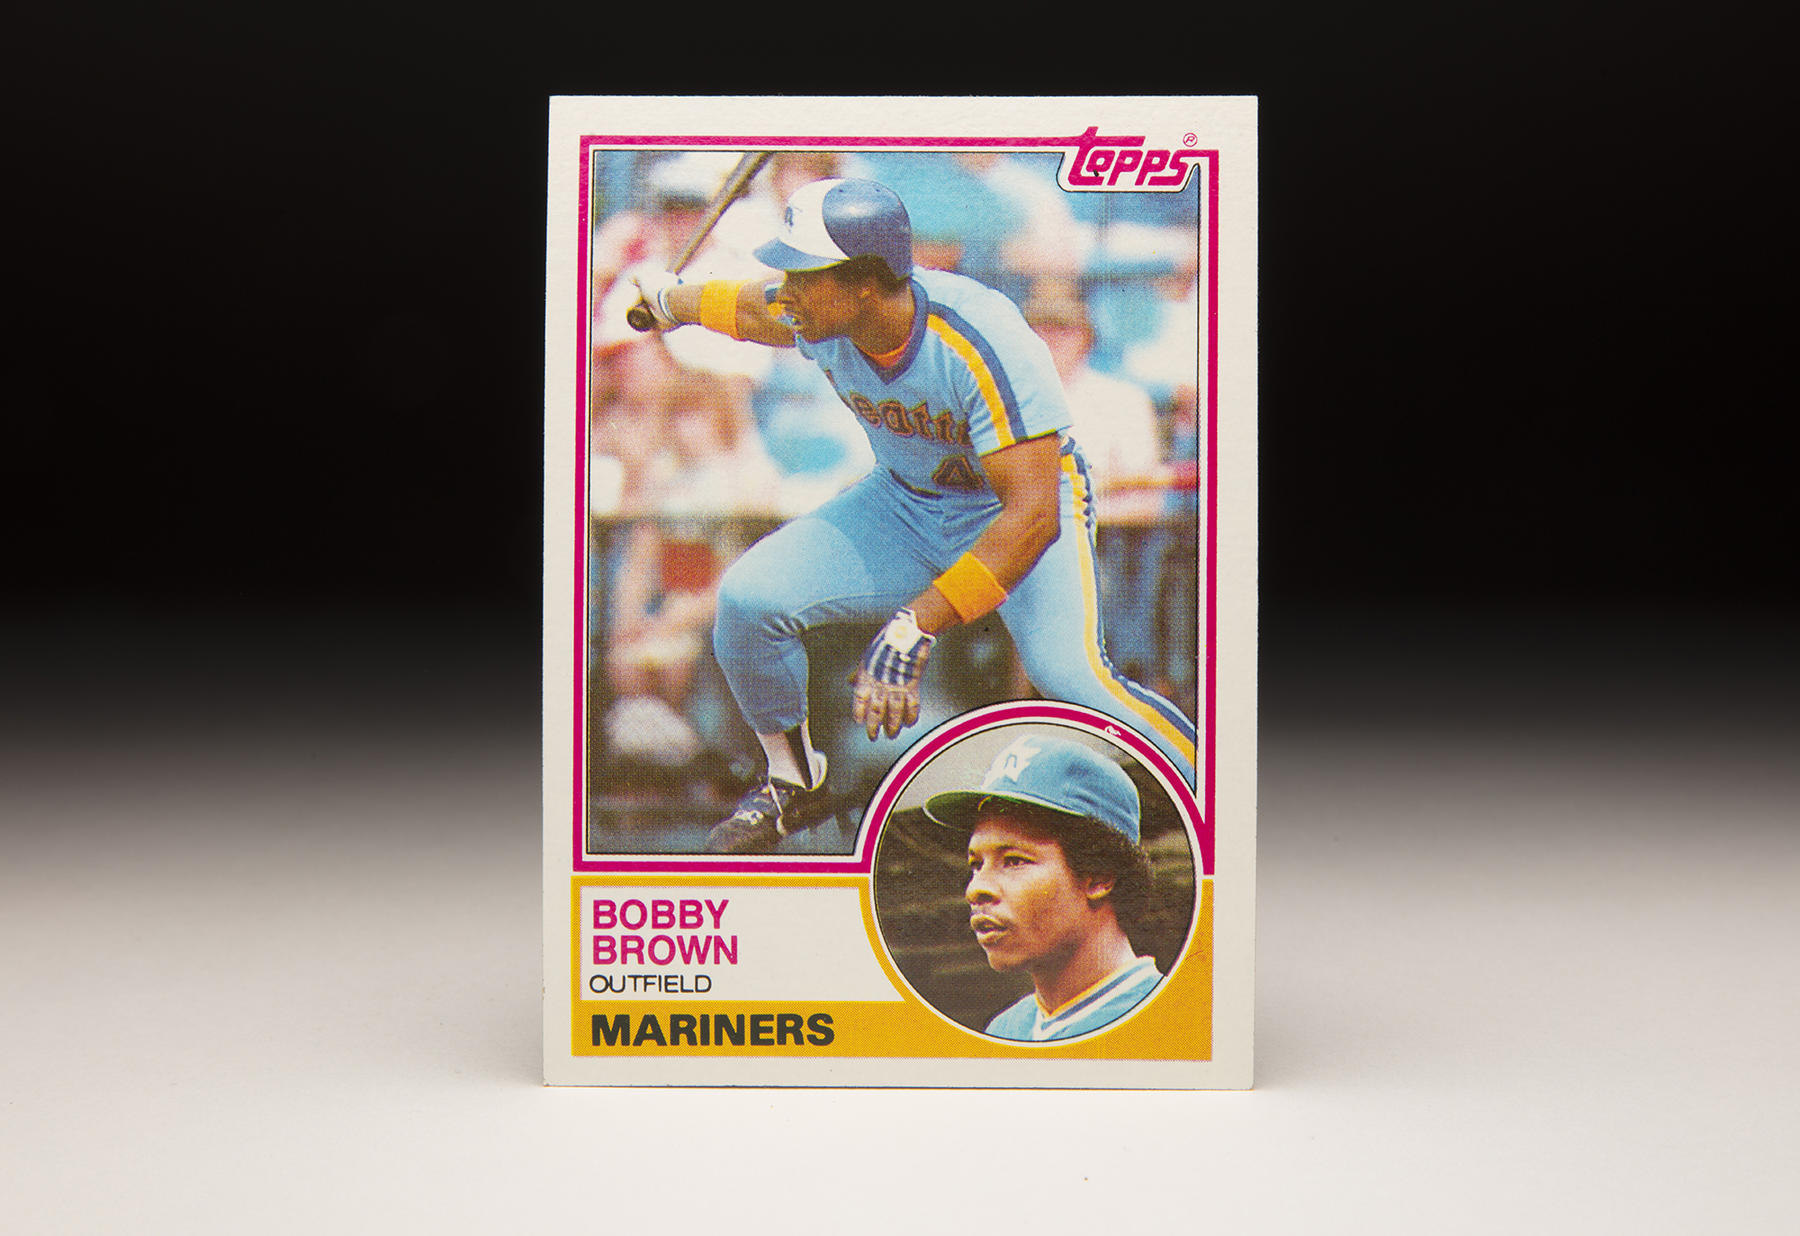 Bobby Brown spent seven seasons in the big leagues, including the 1982 campaign with the Mariners where he was captured in this action shot for the 1983 Topps set. (Milo Stewart Jr./National Baseball Hall of Fame and Museum)